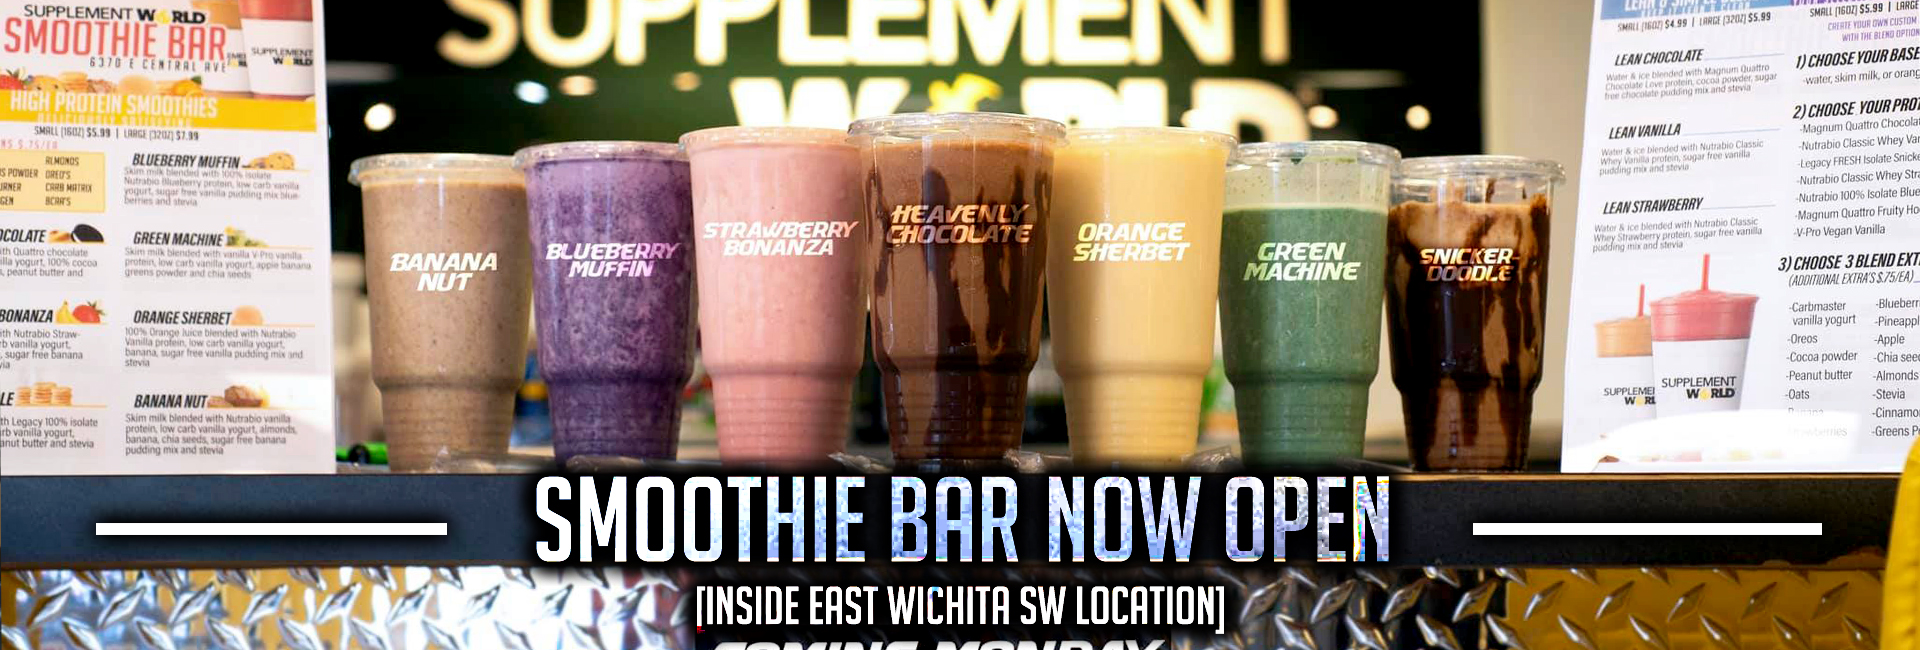 Supplement Stores in Wichita, KS and Oklahoma City, OK : Sports